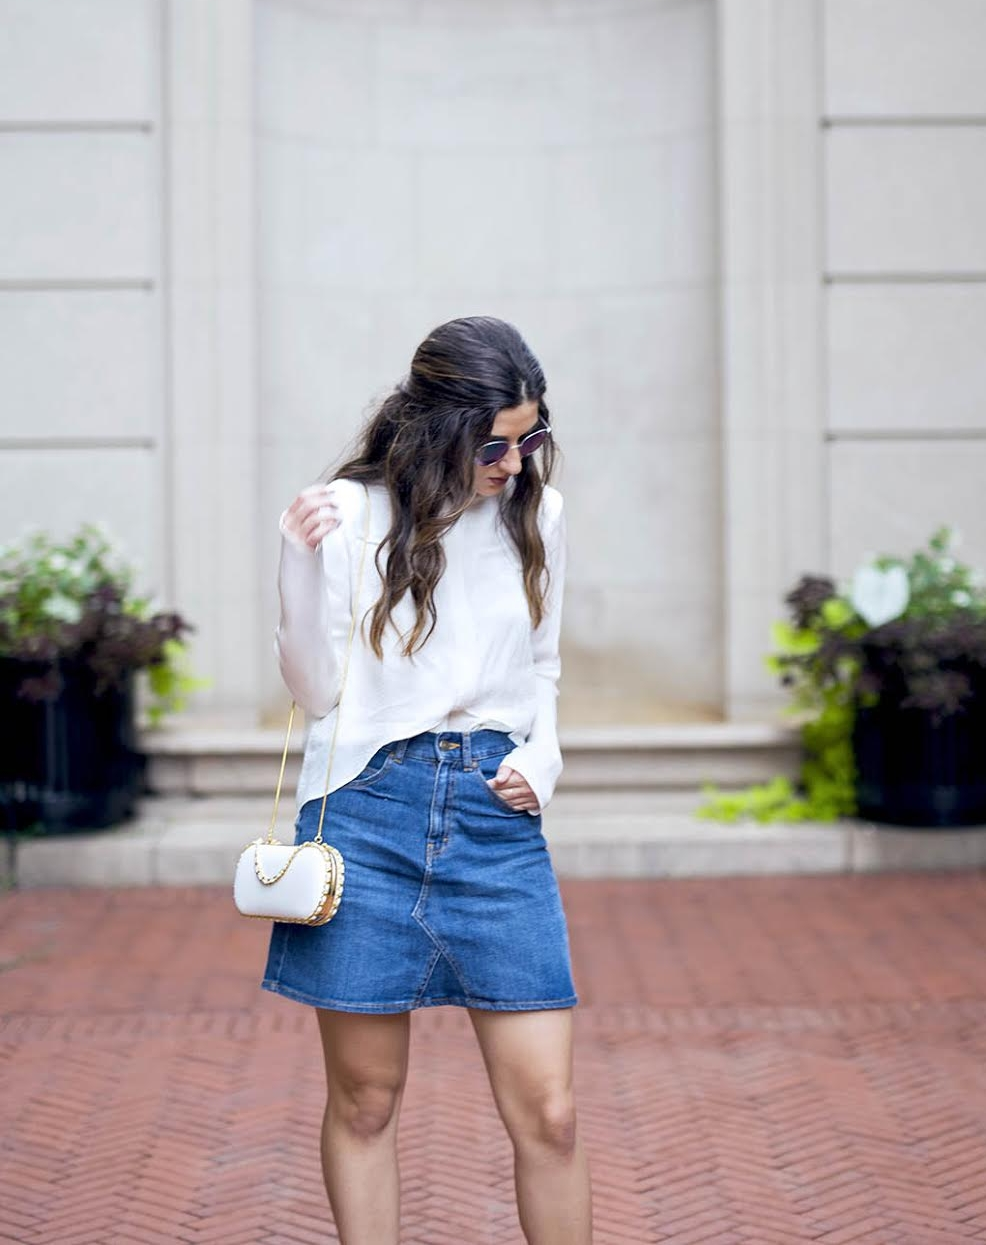 White Silk Top Chelsea and Walker Louboutins & Love Fashion Blog Esther Santer NYC Street Style Blogger Outfit OOTD Trendy Jean Denim Skirt Zara Clutch Bag Erin Dana Gold Chain Ivanka Trump Fringe Booties Inspo Top Women Girl Transitional Pieces Fall.jpg